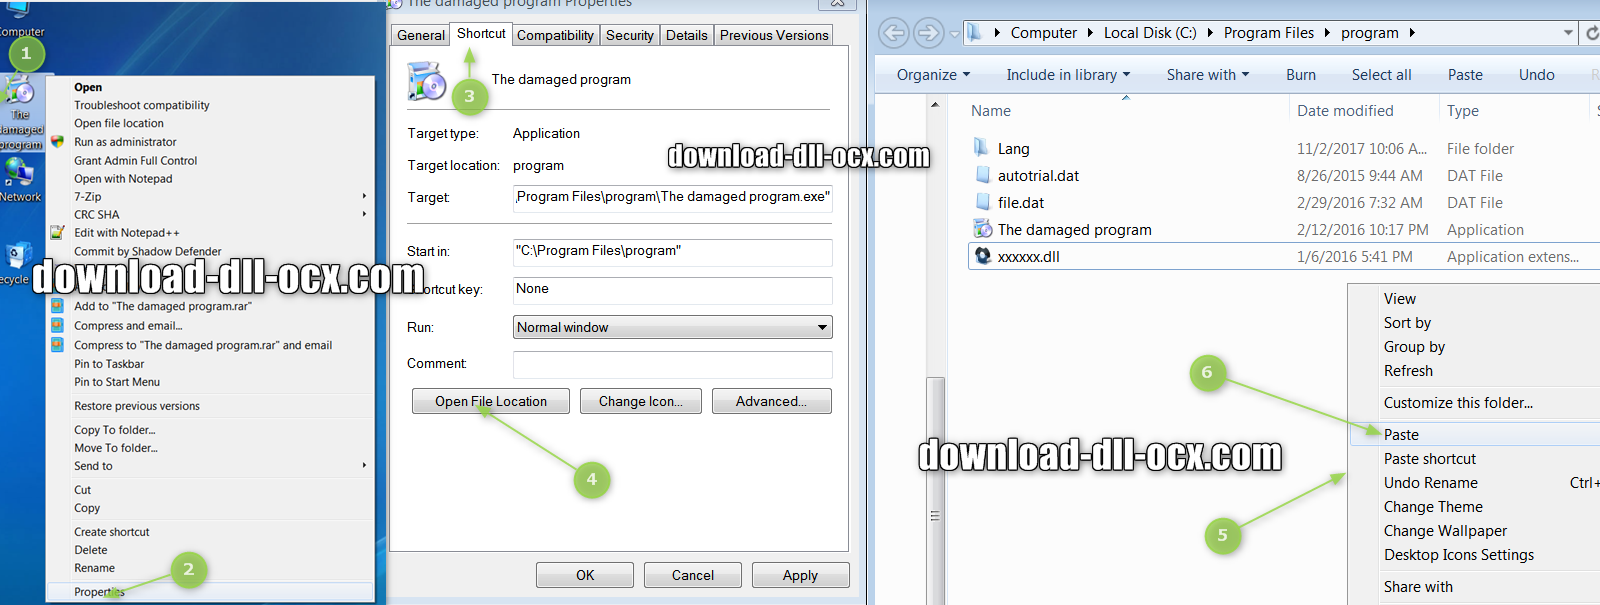 how to install Patcher.dll file? for fix missing